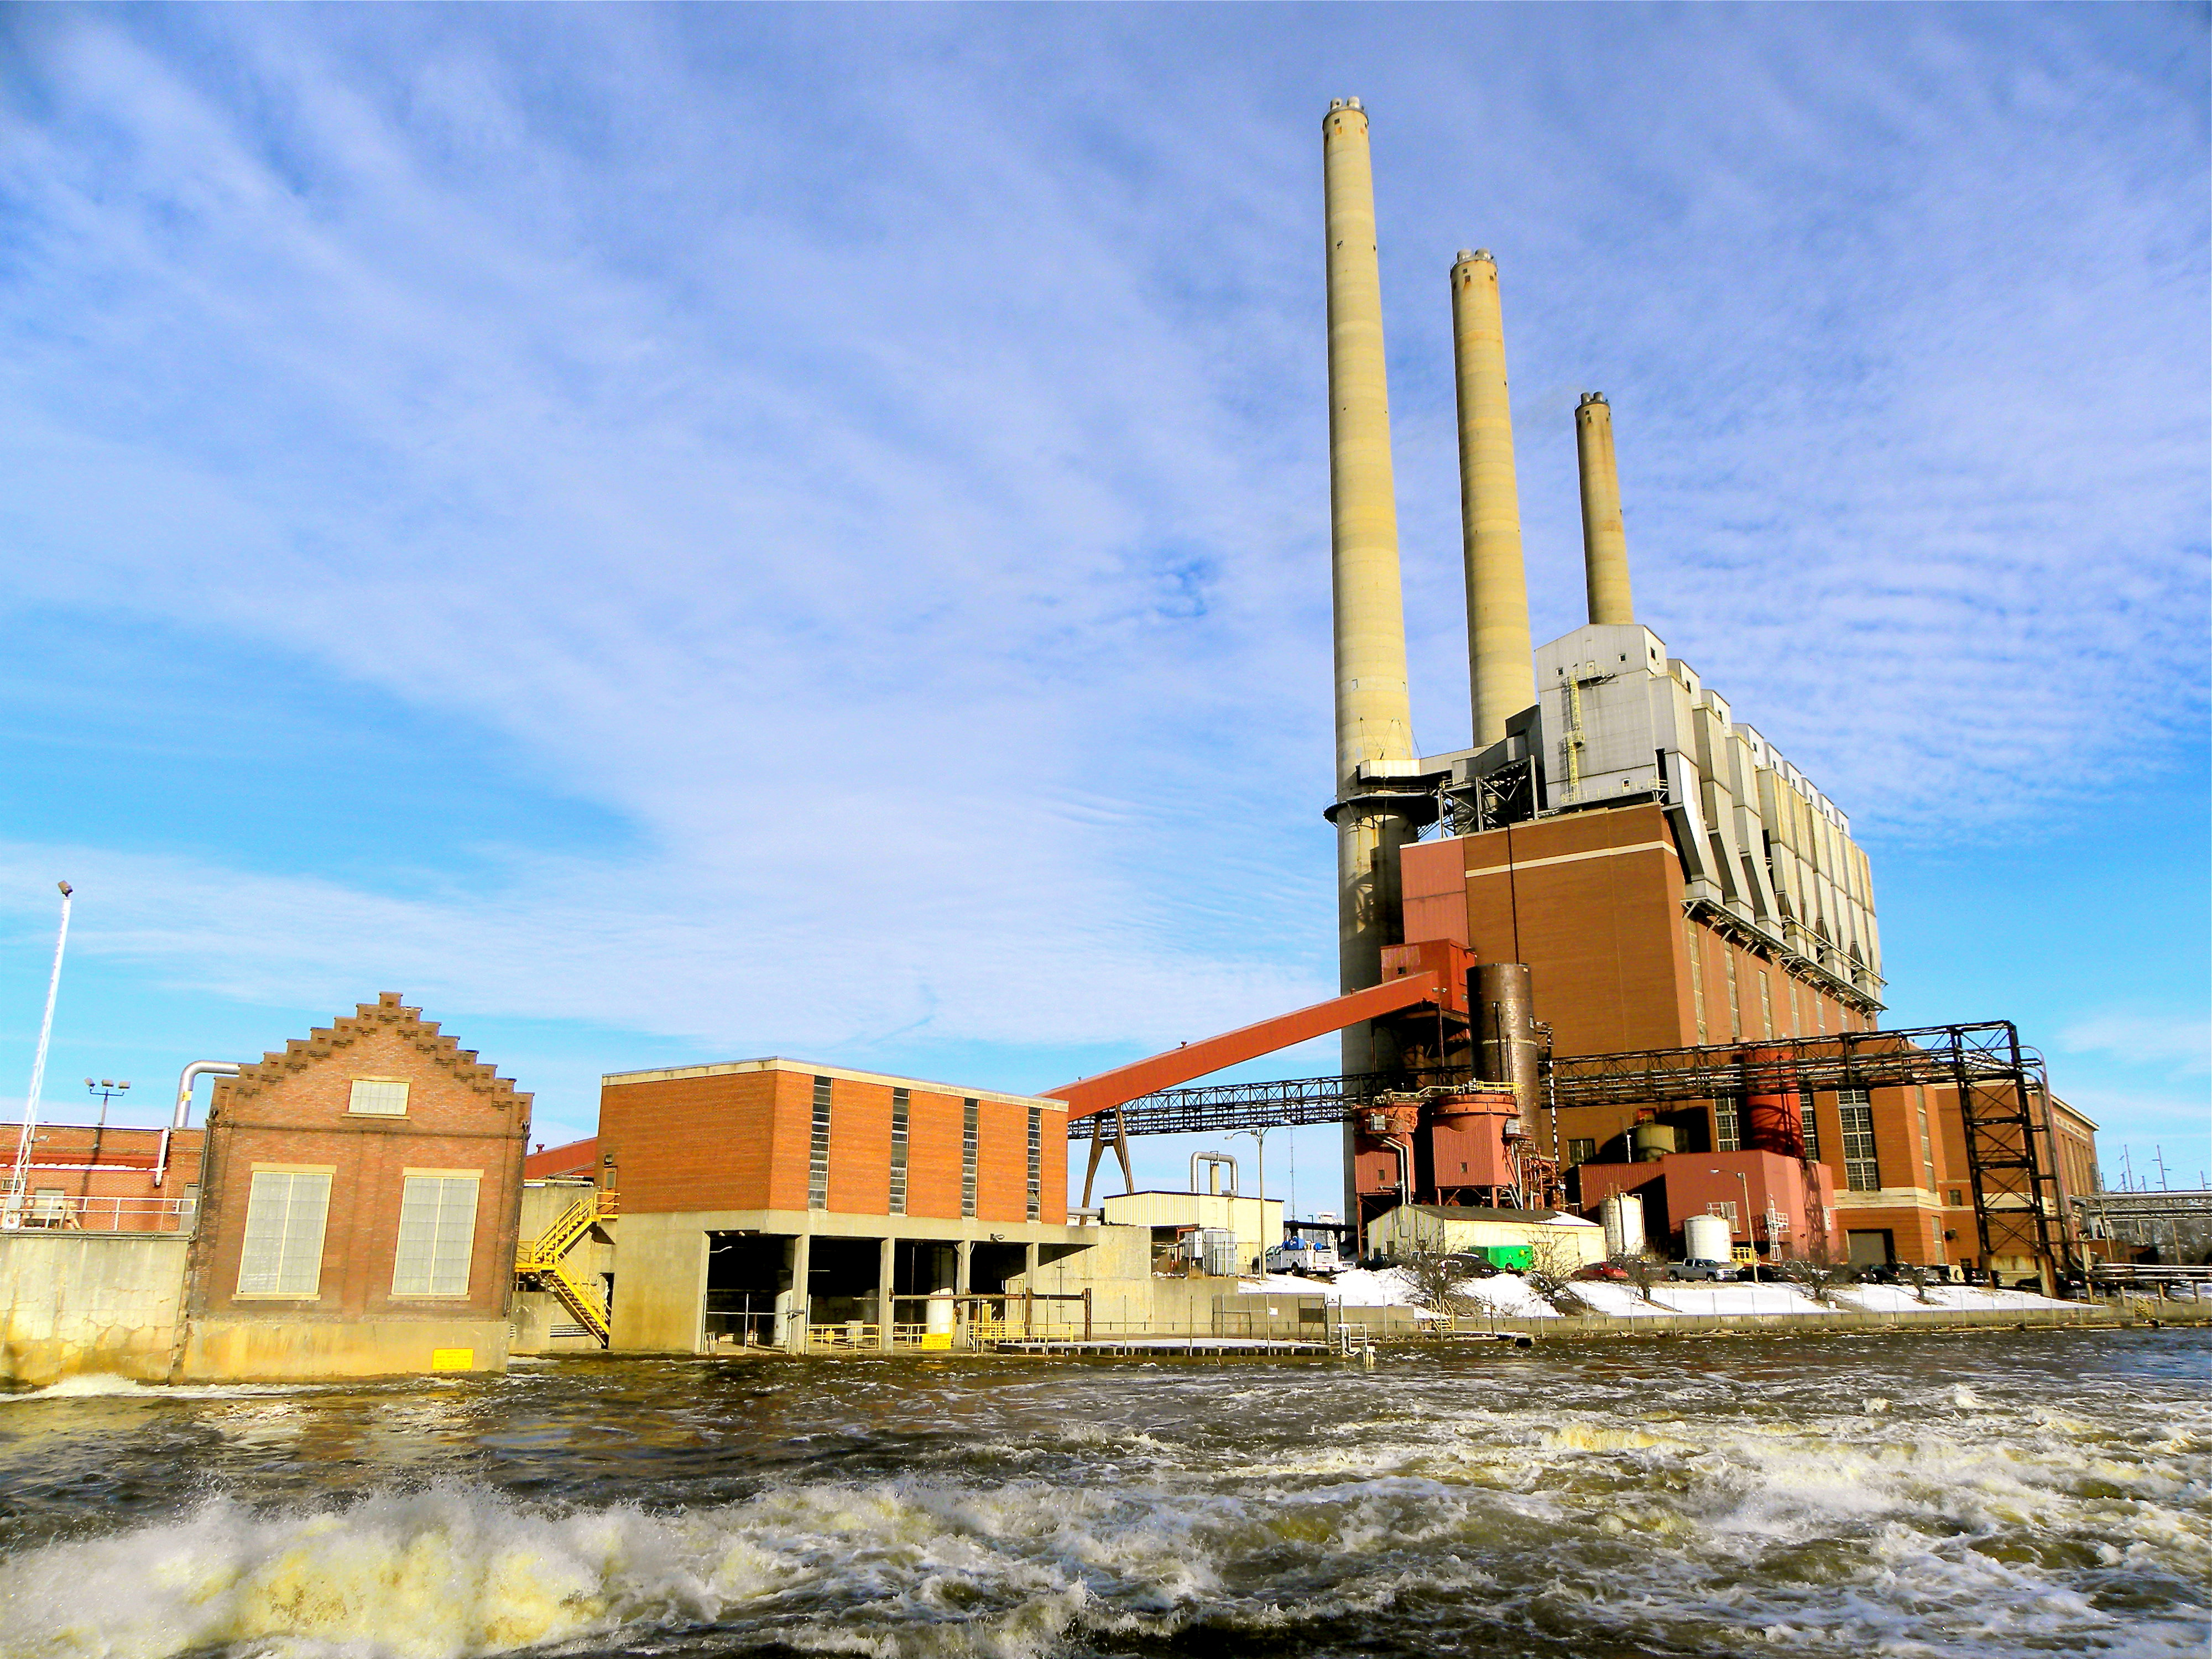 Otto E. Eckert Station, a coal-fired power plant in Lansing, Mich. Photo: Jennifer Kalish.